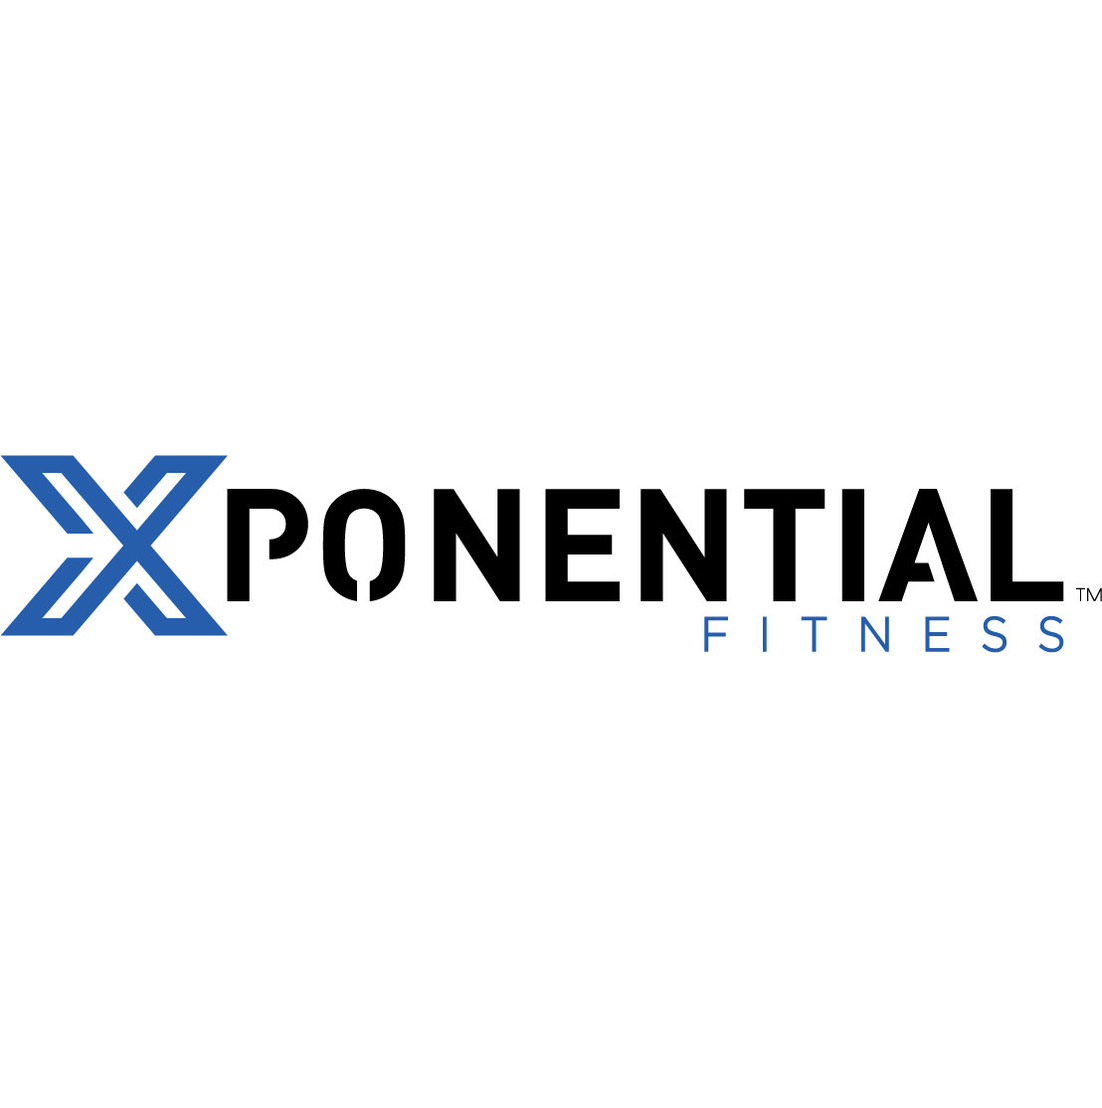 Ledge - Xponential Fitness Bookkeeping Services